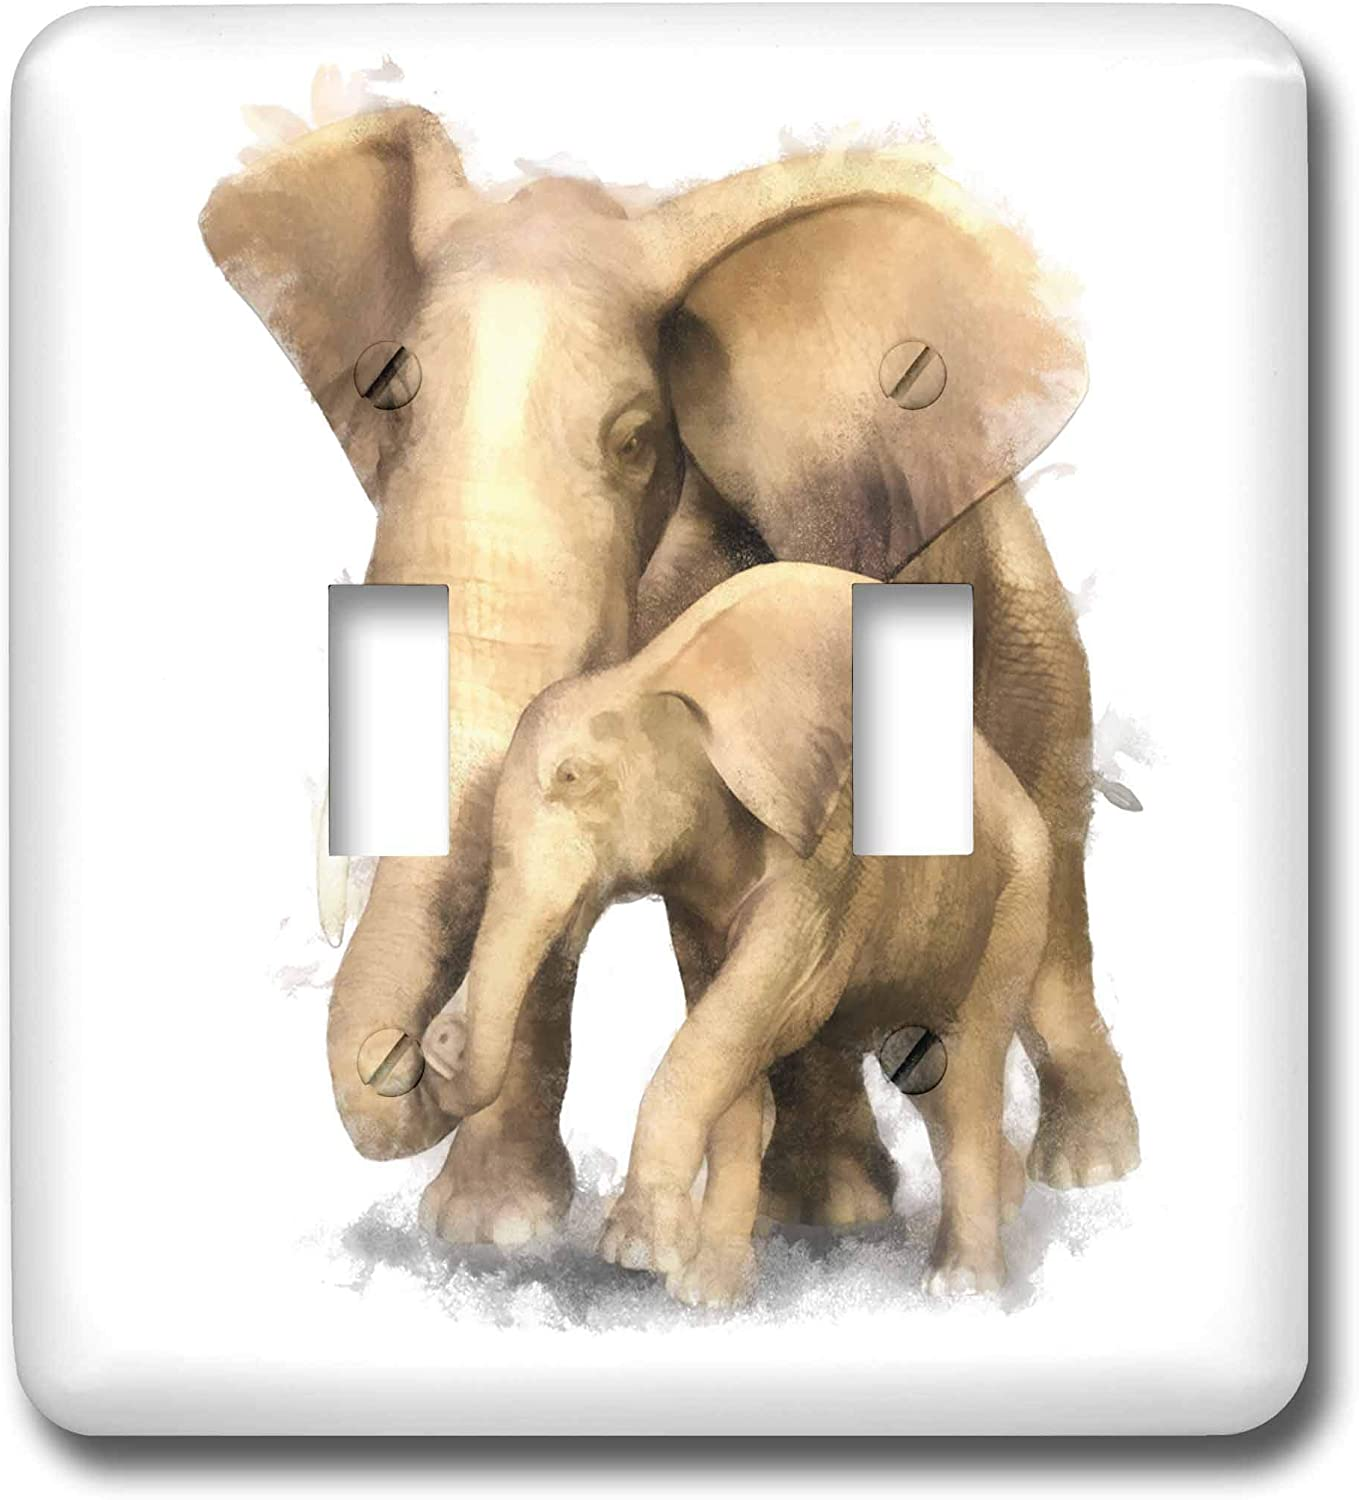 3drose Lsp 38670 2 Elephant Mother And Child Double Toggle Switch Switch Plates Amazon Com